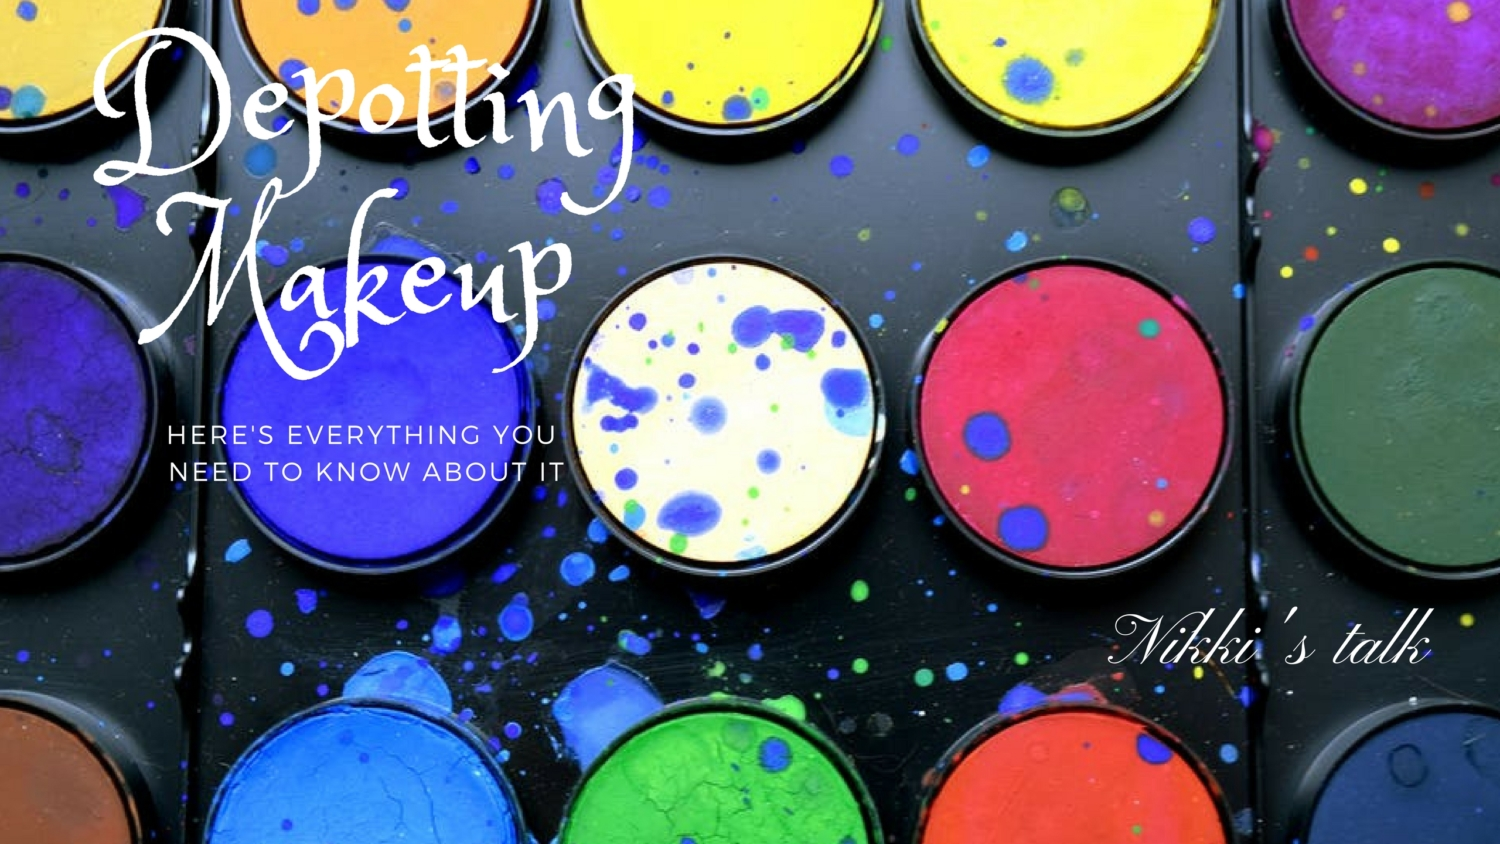 depotting makeup | Nikki's talk